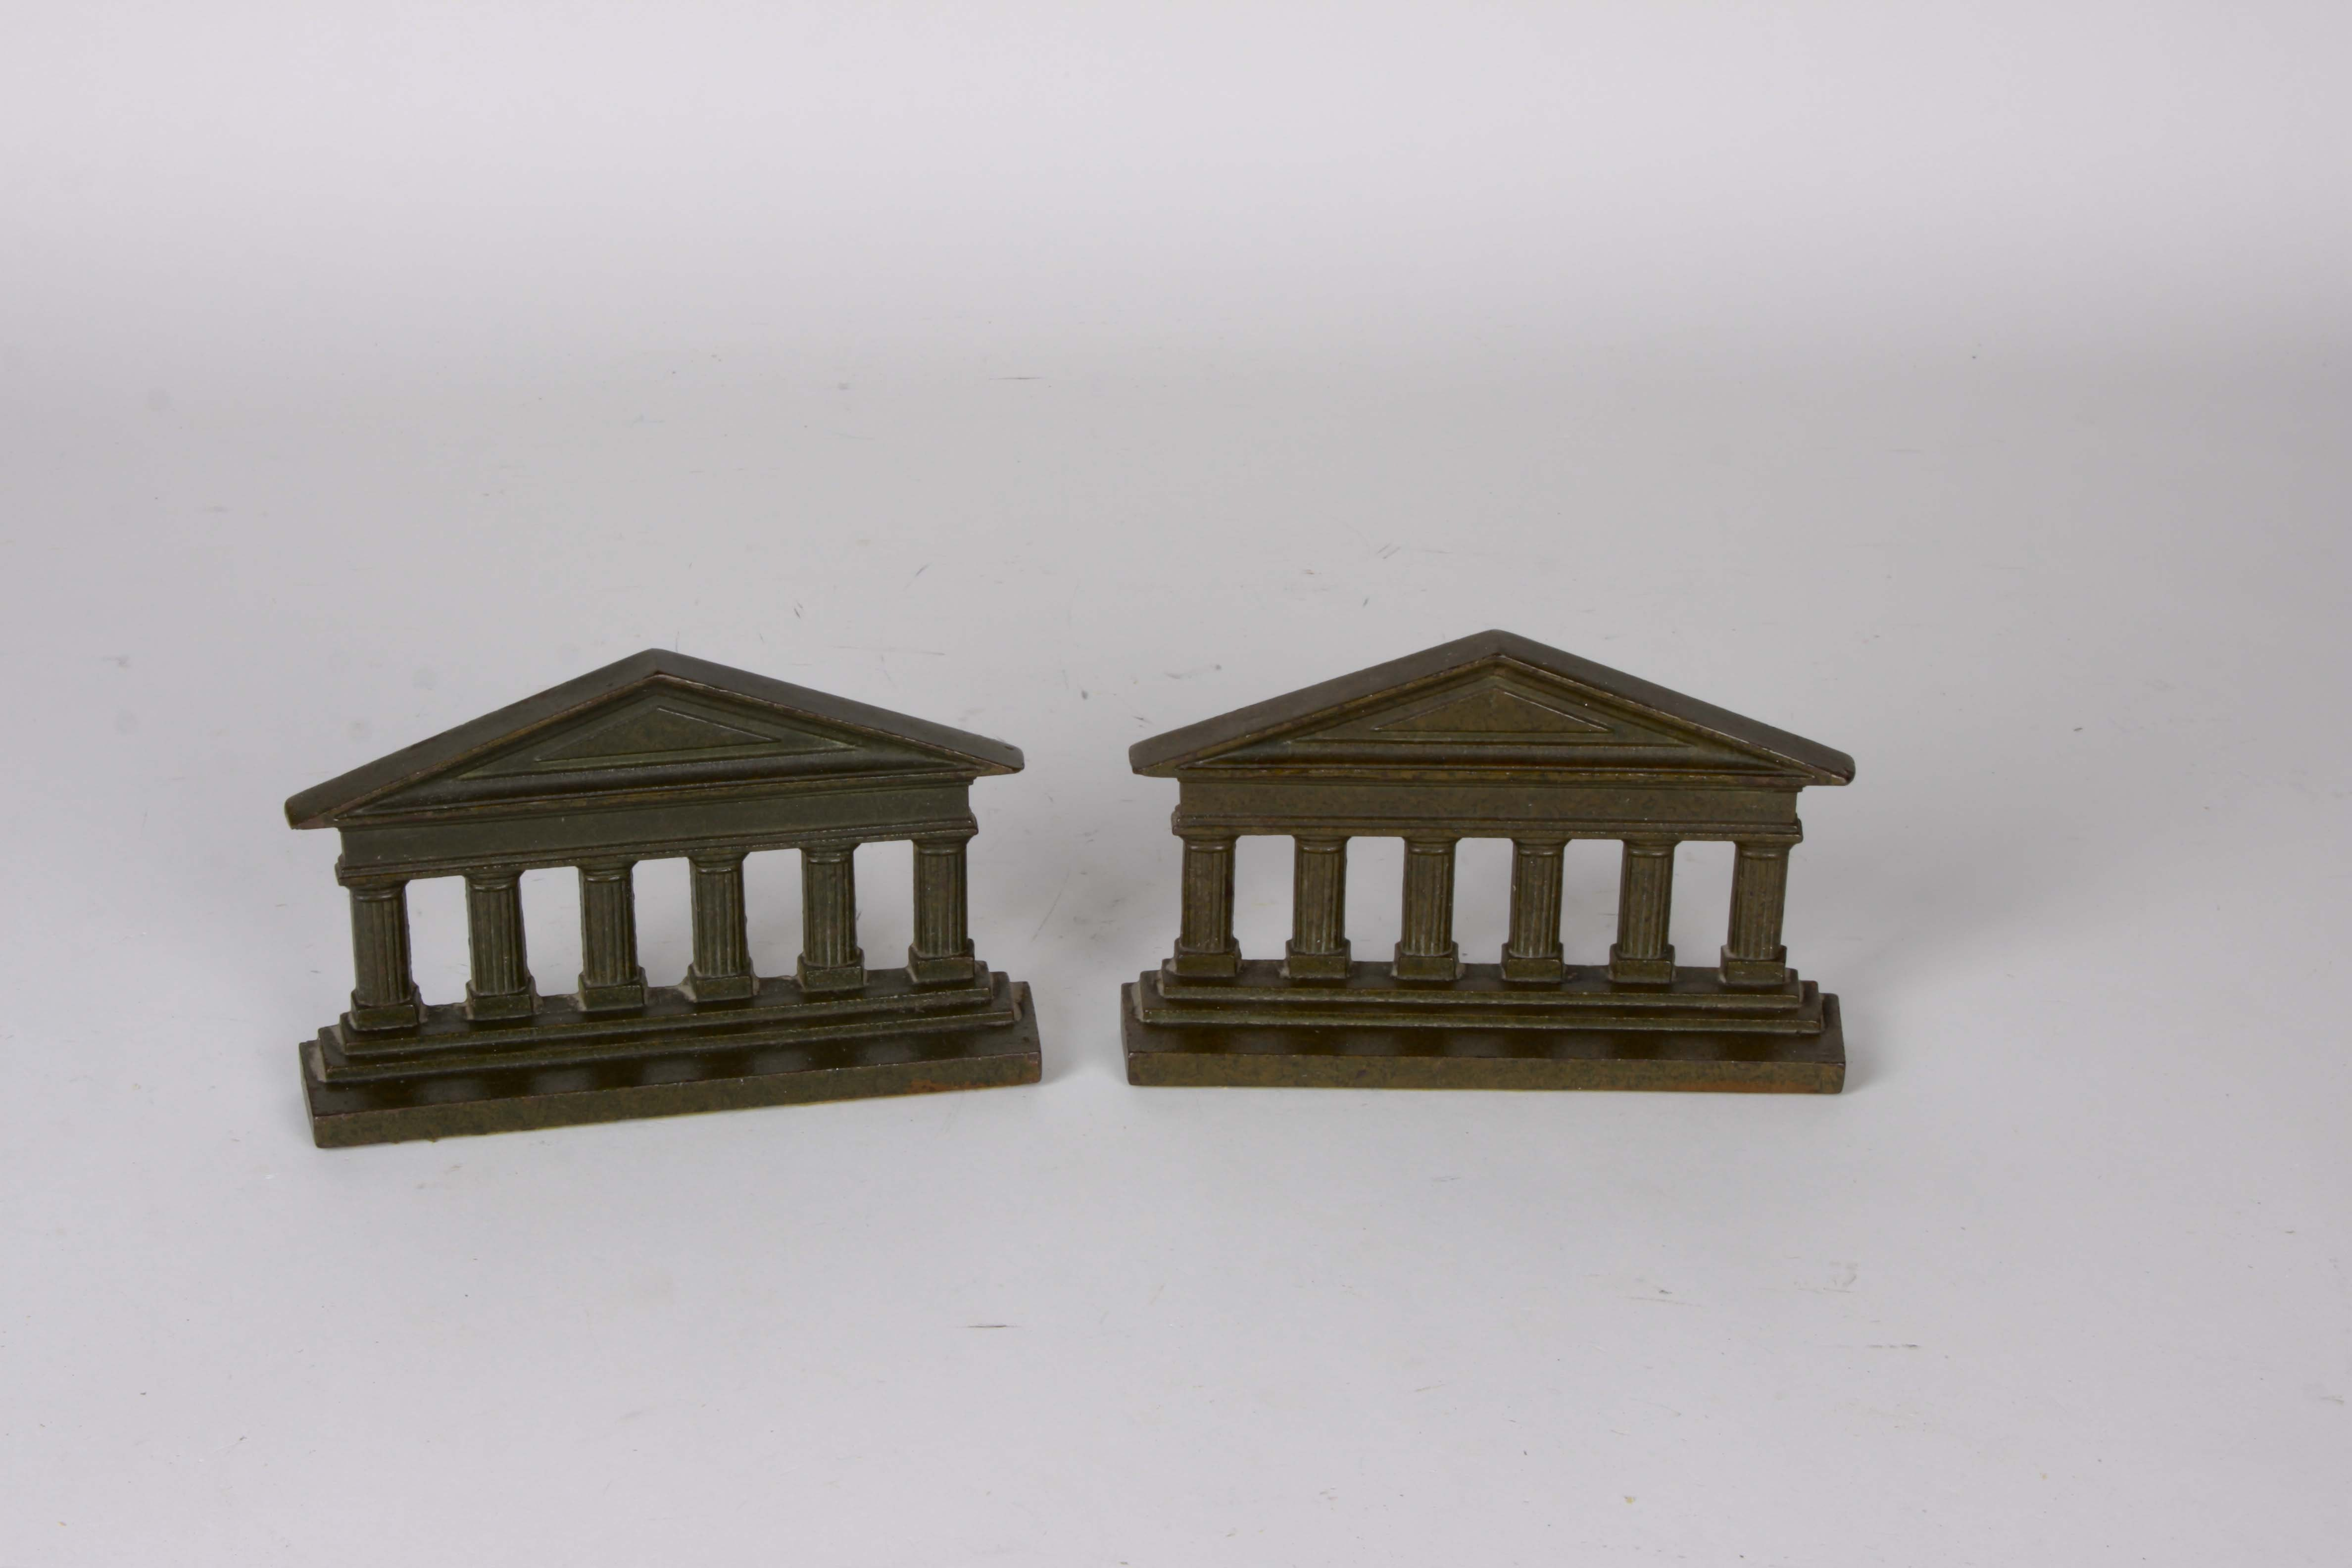 Greek Temple Column Bookends by Judd Manufacturing